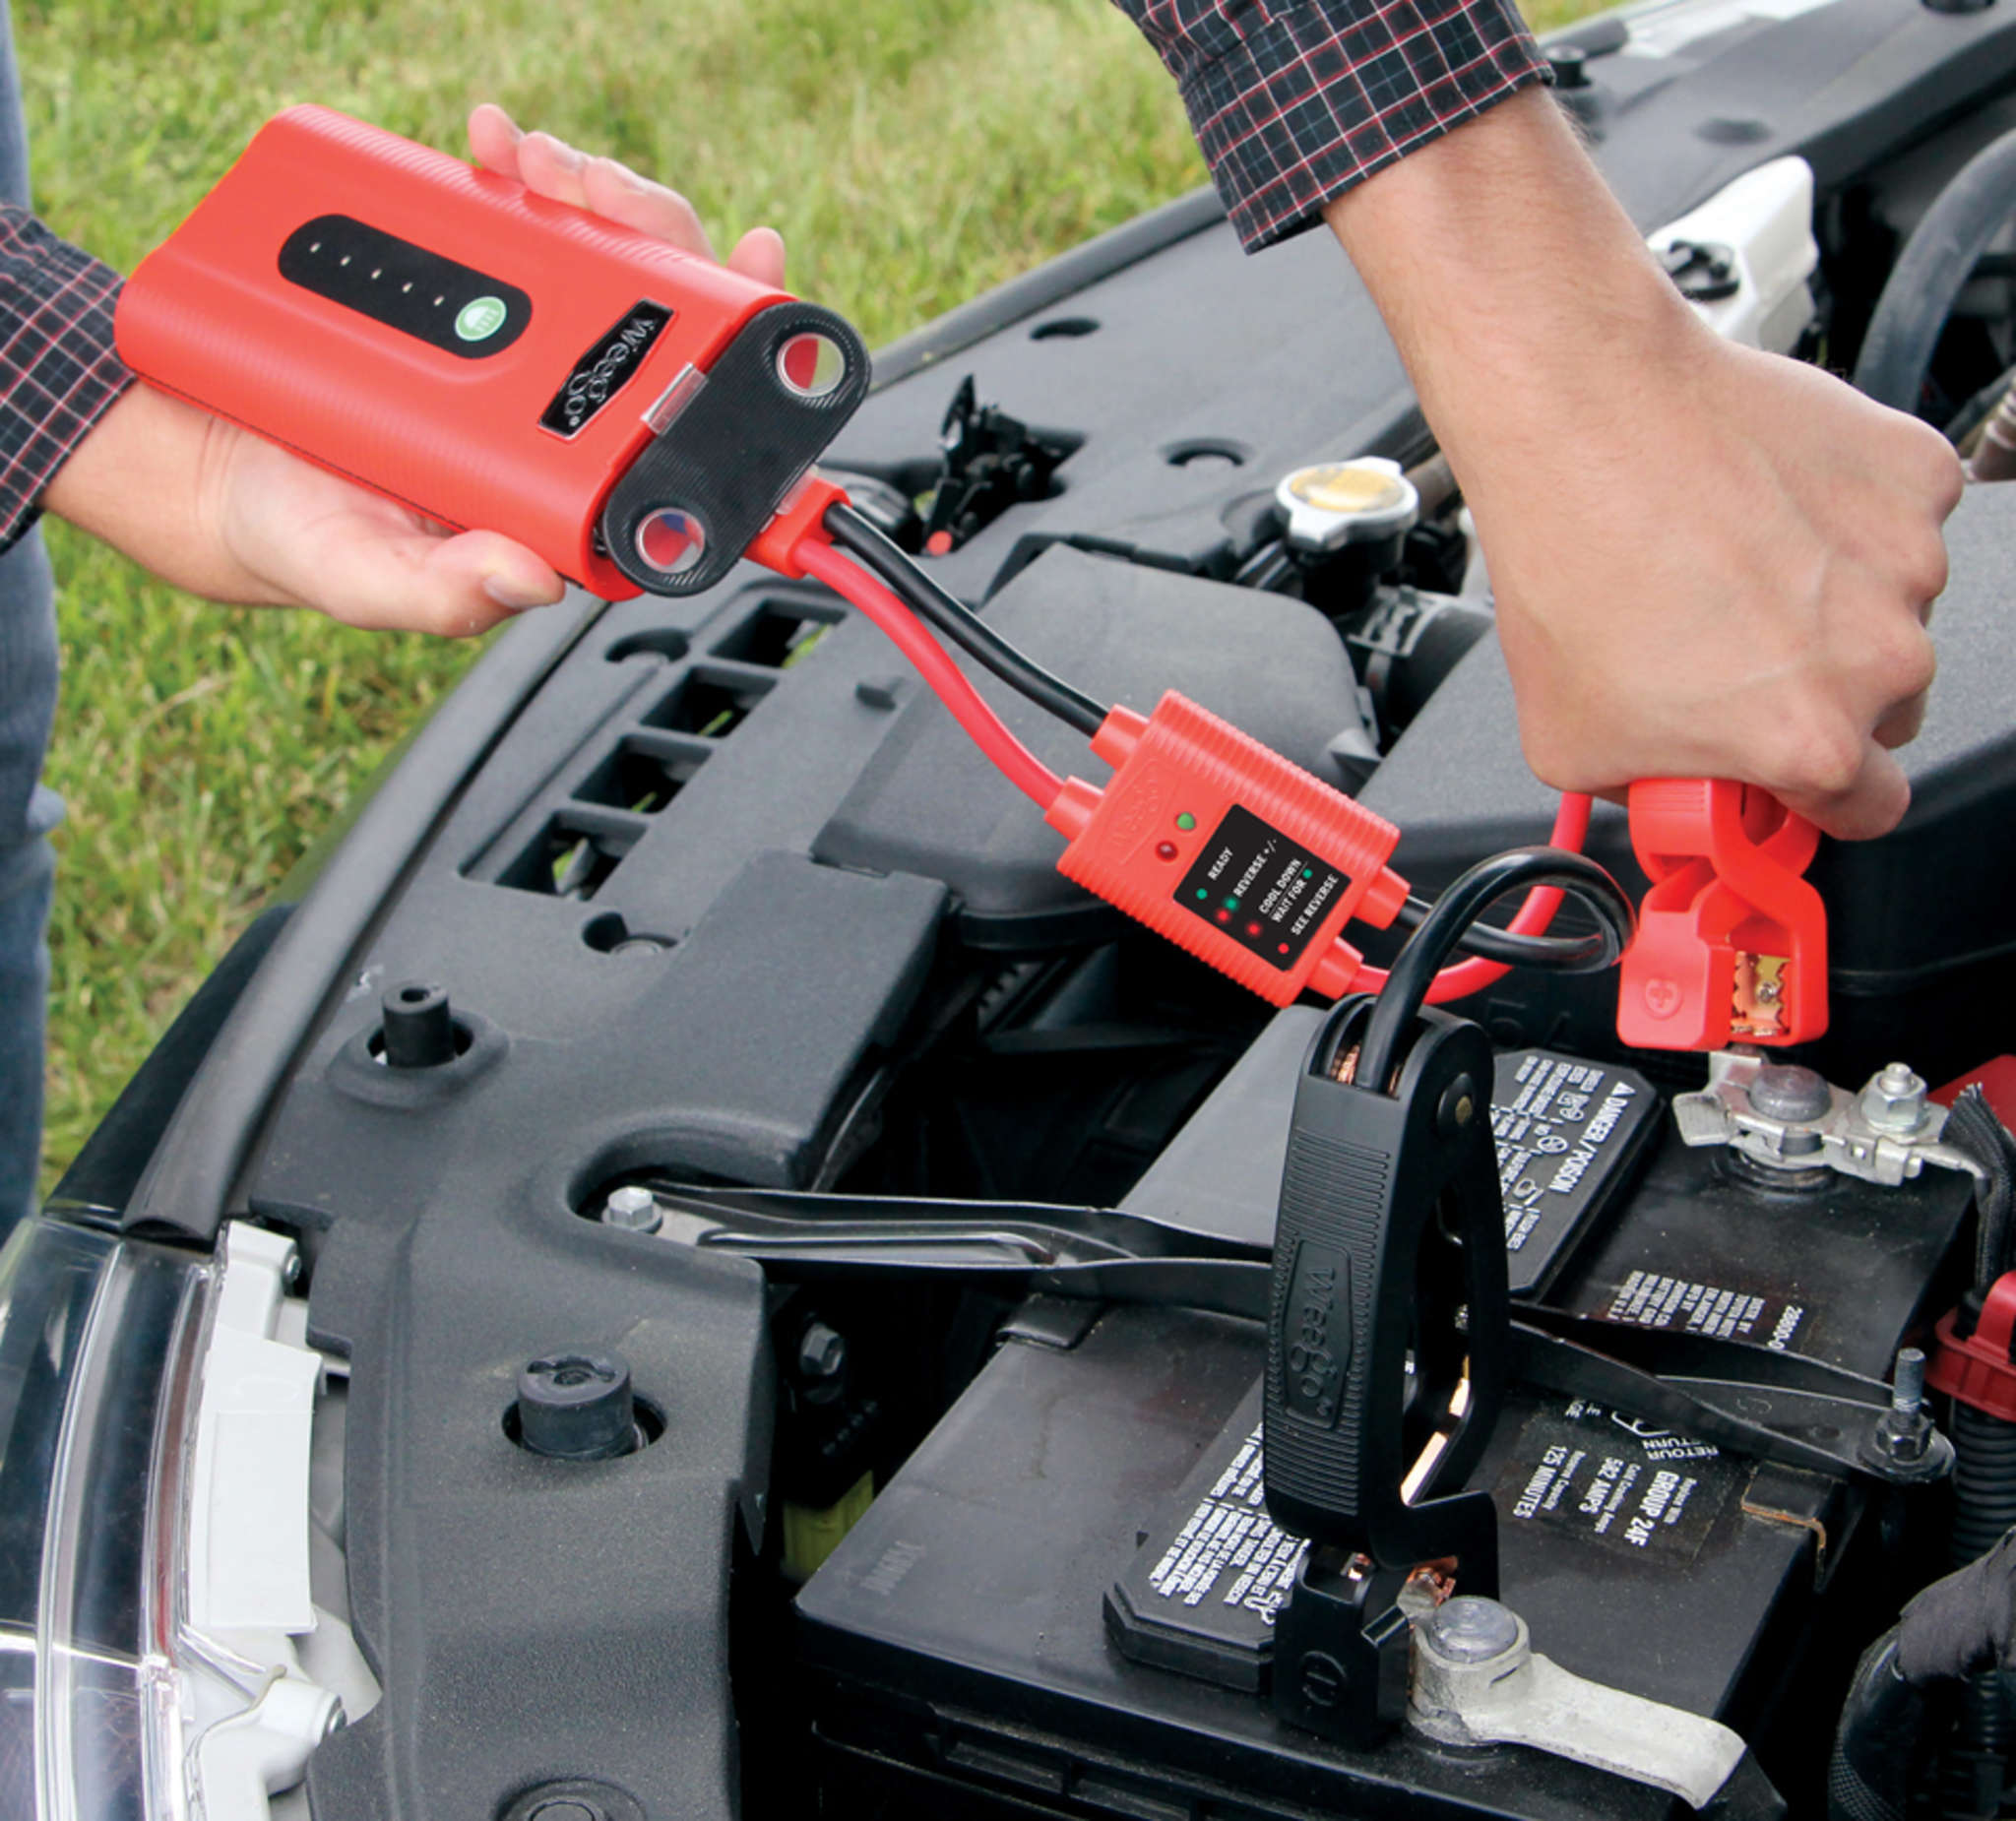 The Weego Portable Power Jump Starter 44 is versatile and safe.